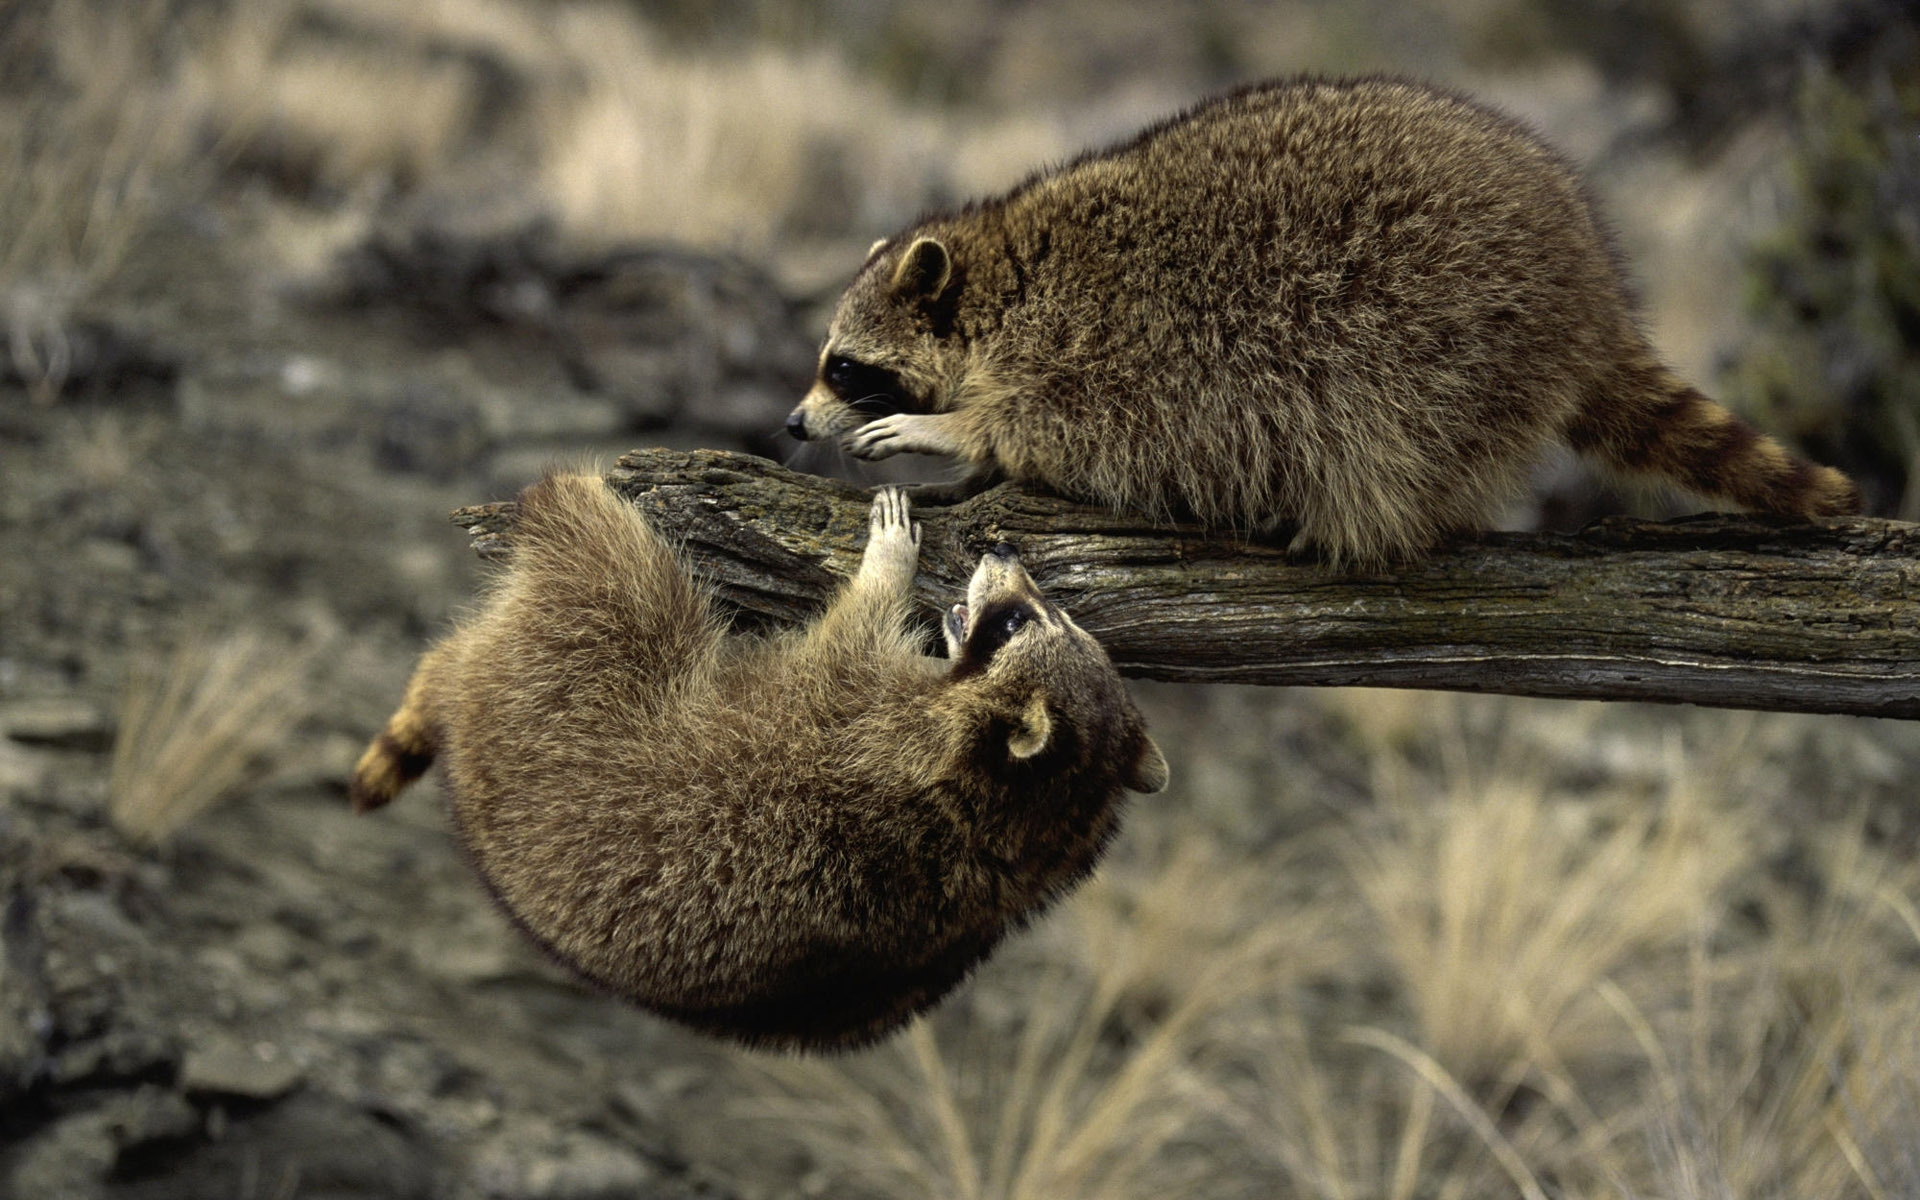 35372 download wallpaper Animals, Raccoons screensavers and pictures for free